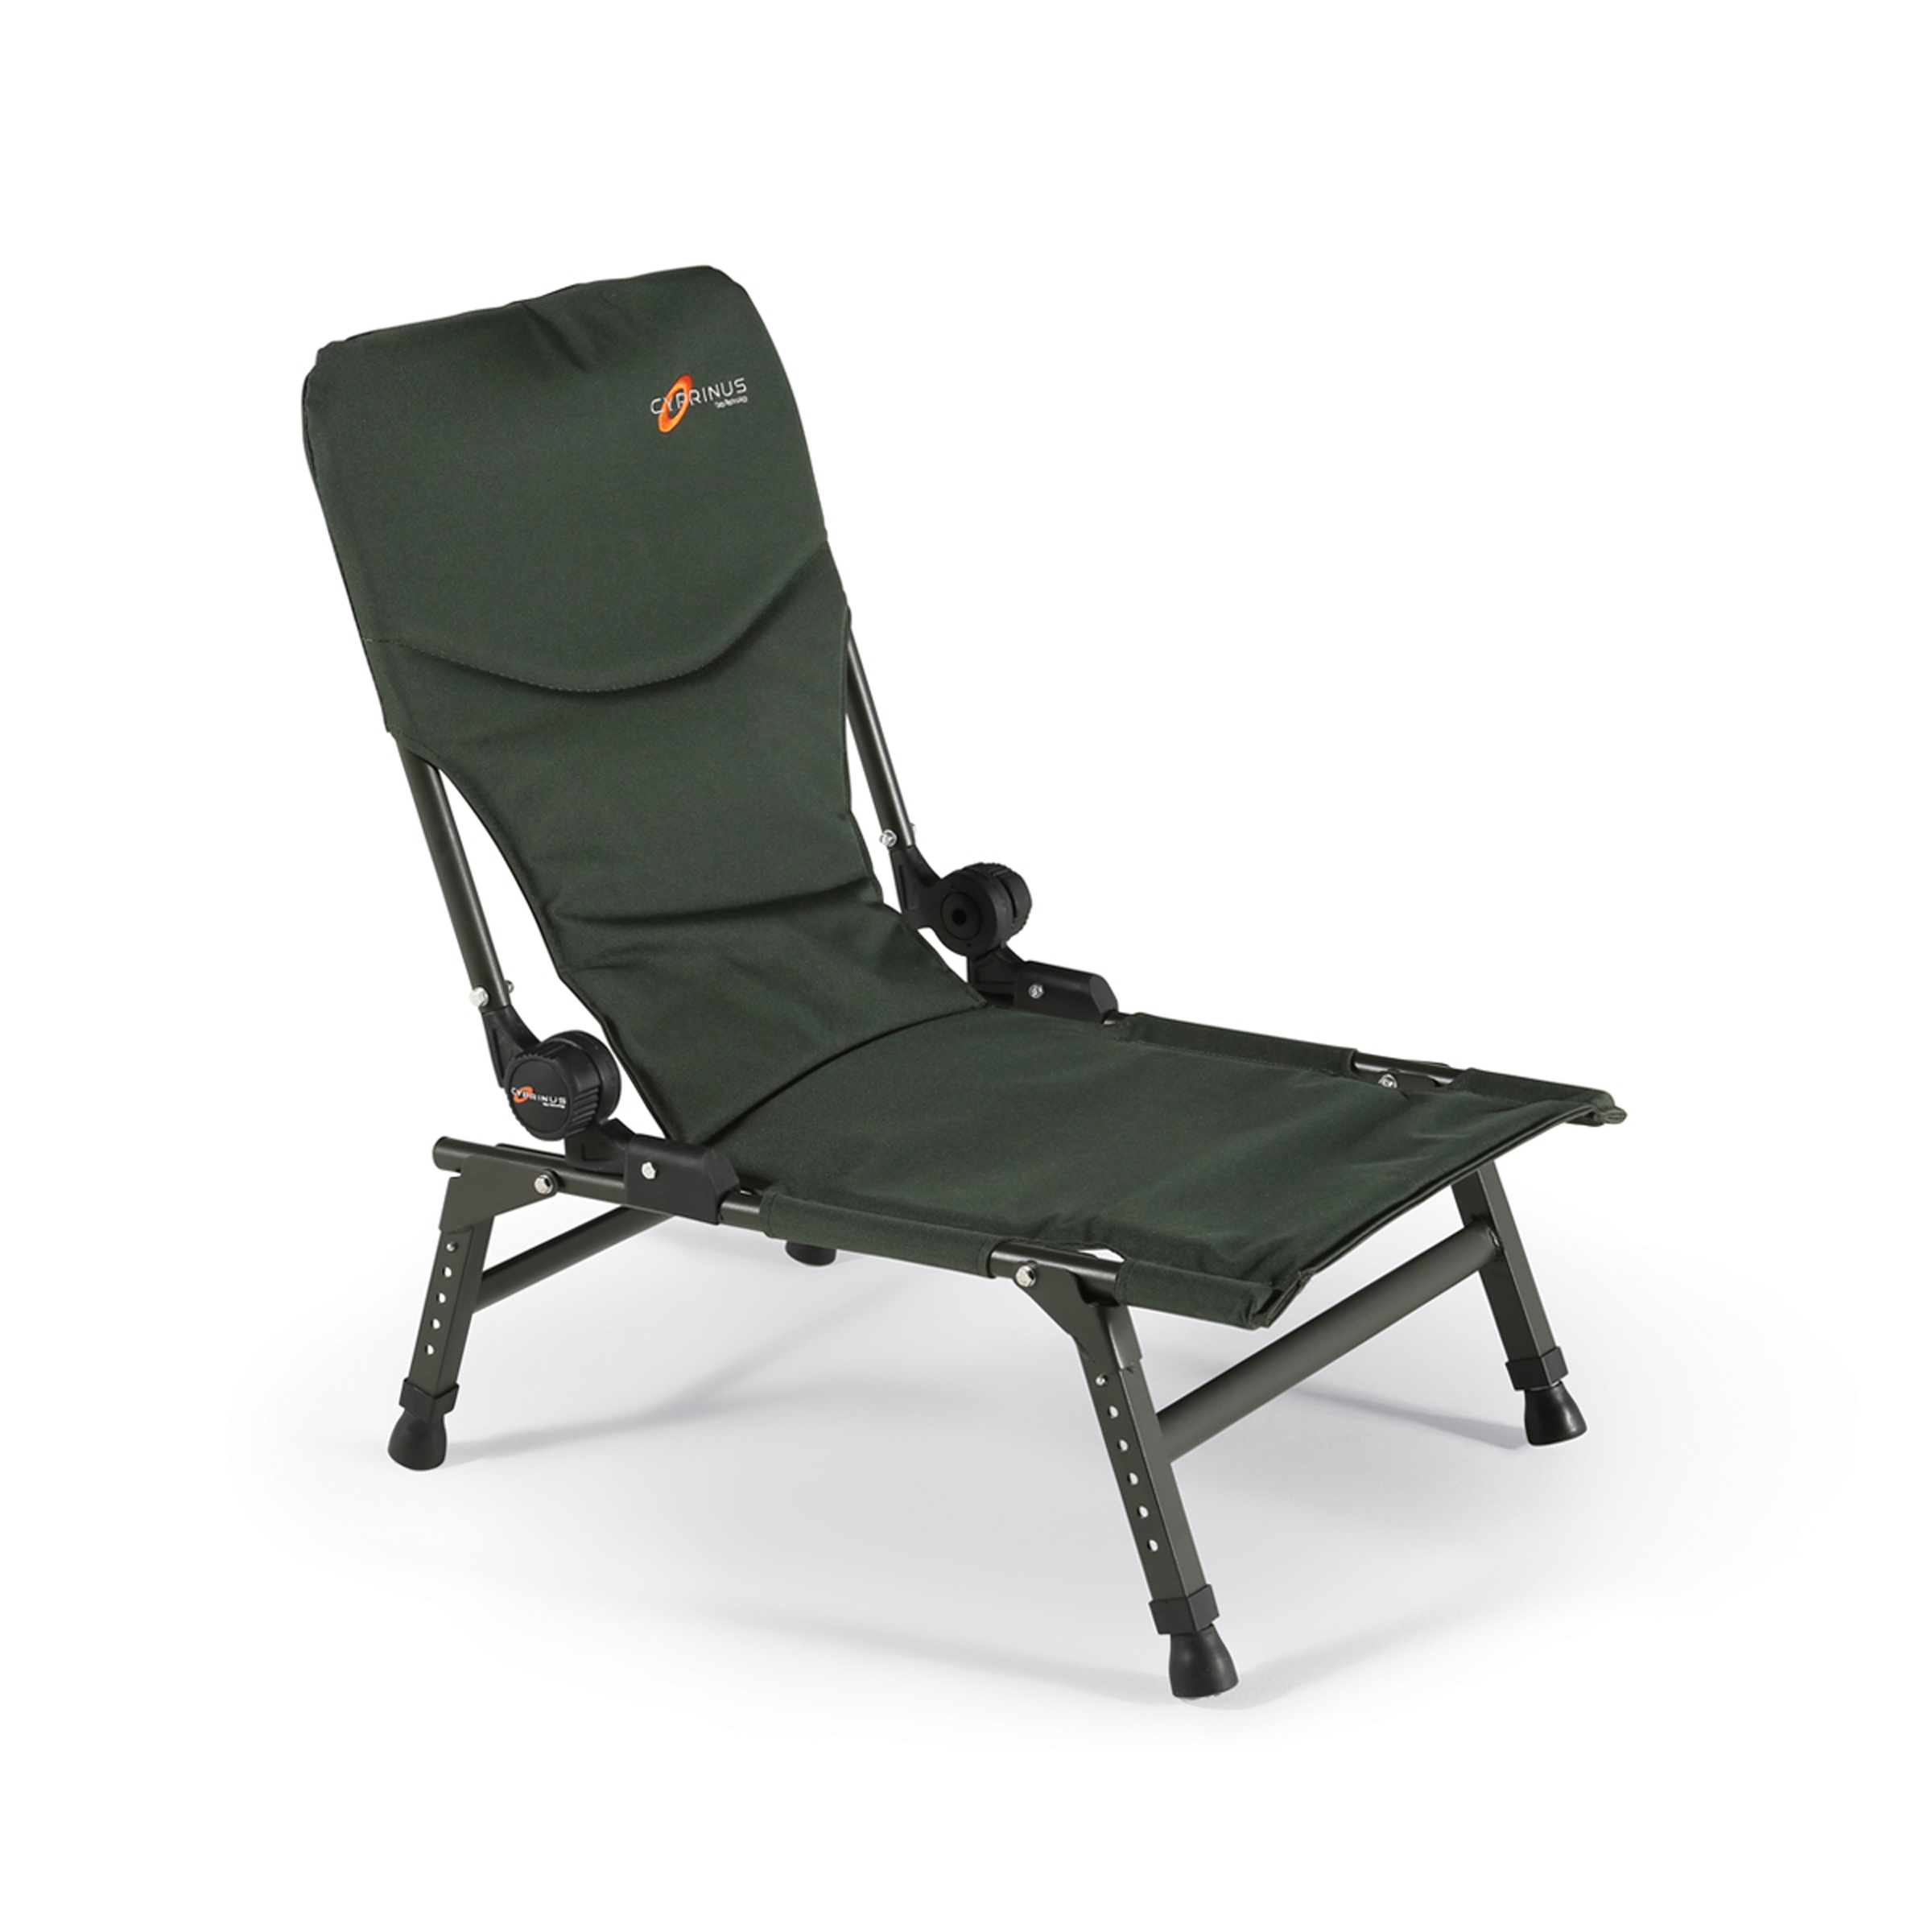 fishing chair best price events nationwide covers cyprinus stalk lite mkii stalking session lightweight carp